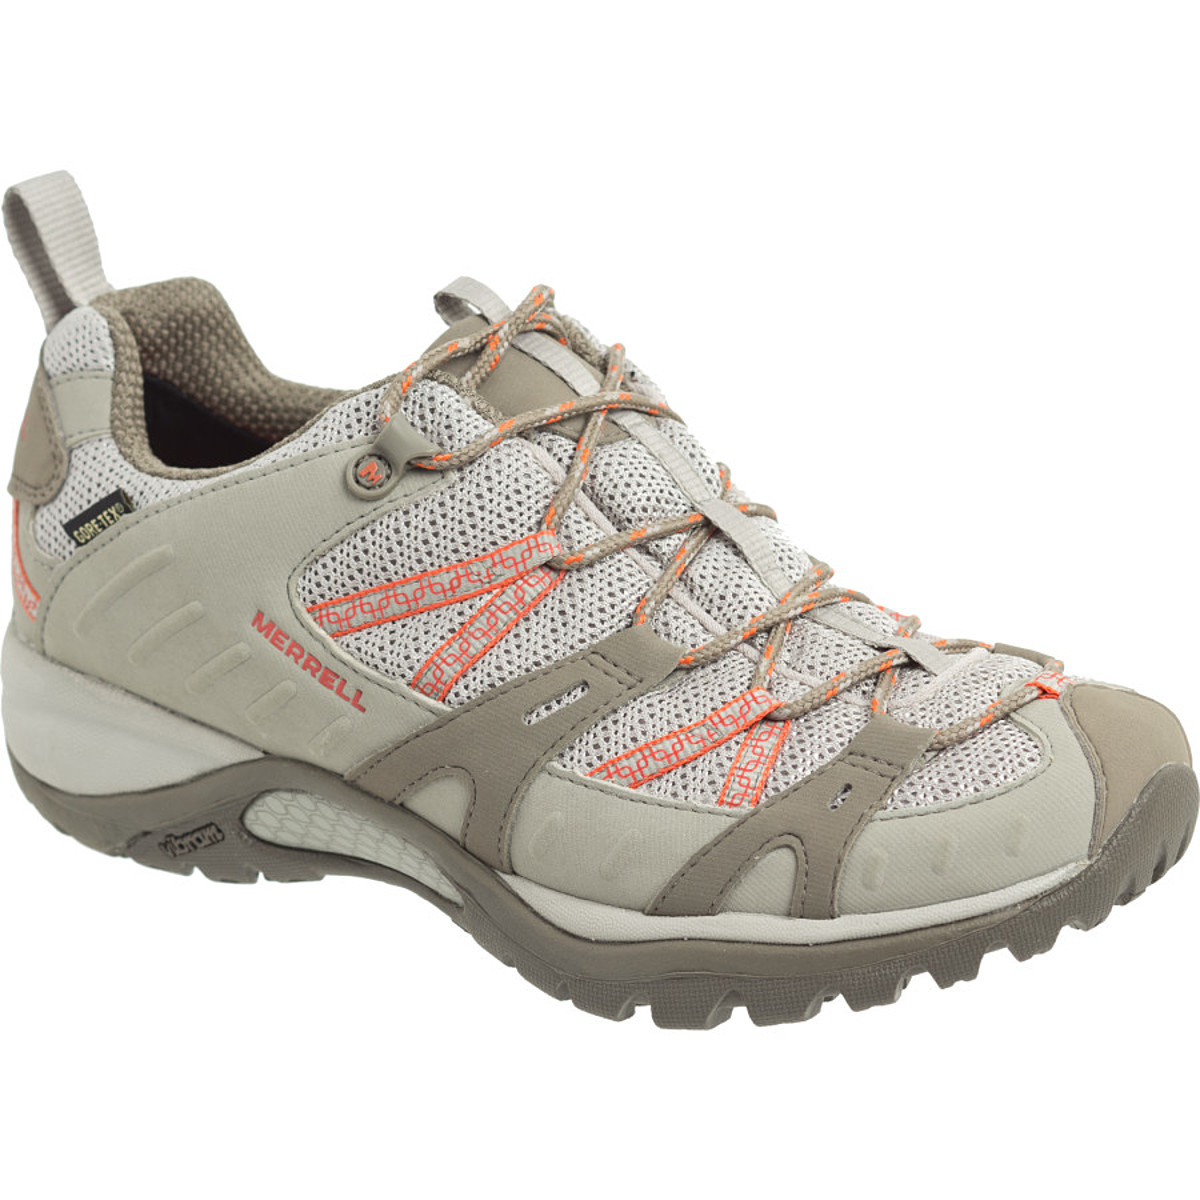 photo Merrell Siren Sport GoreTex XCR trail shoe